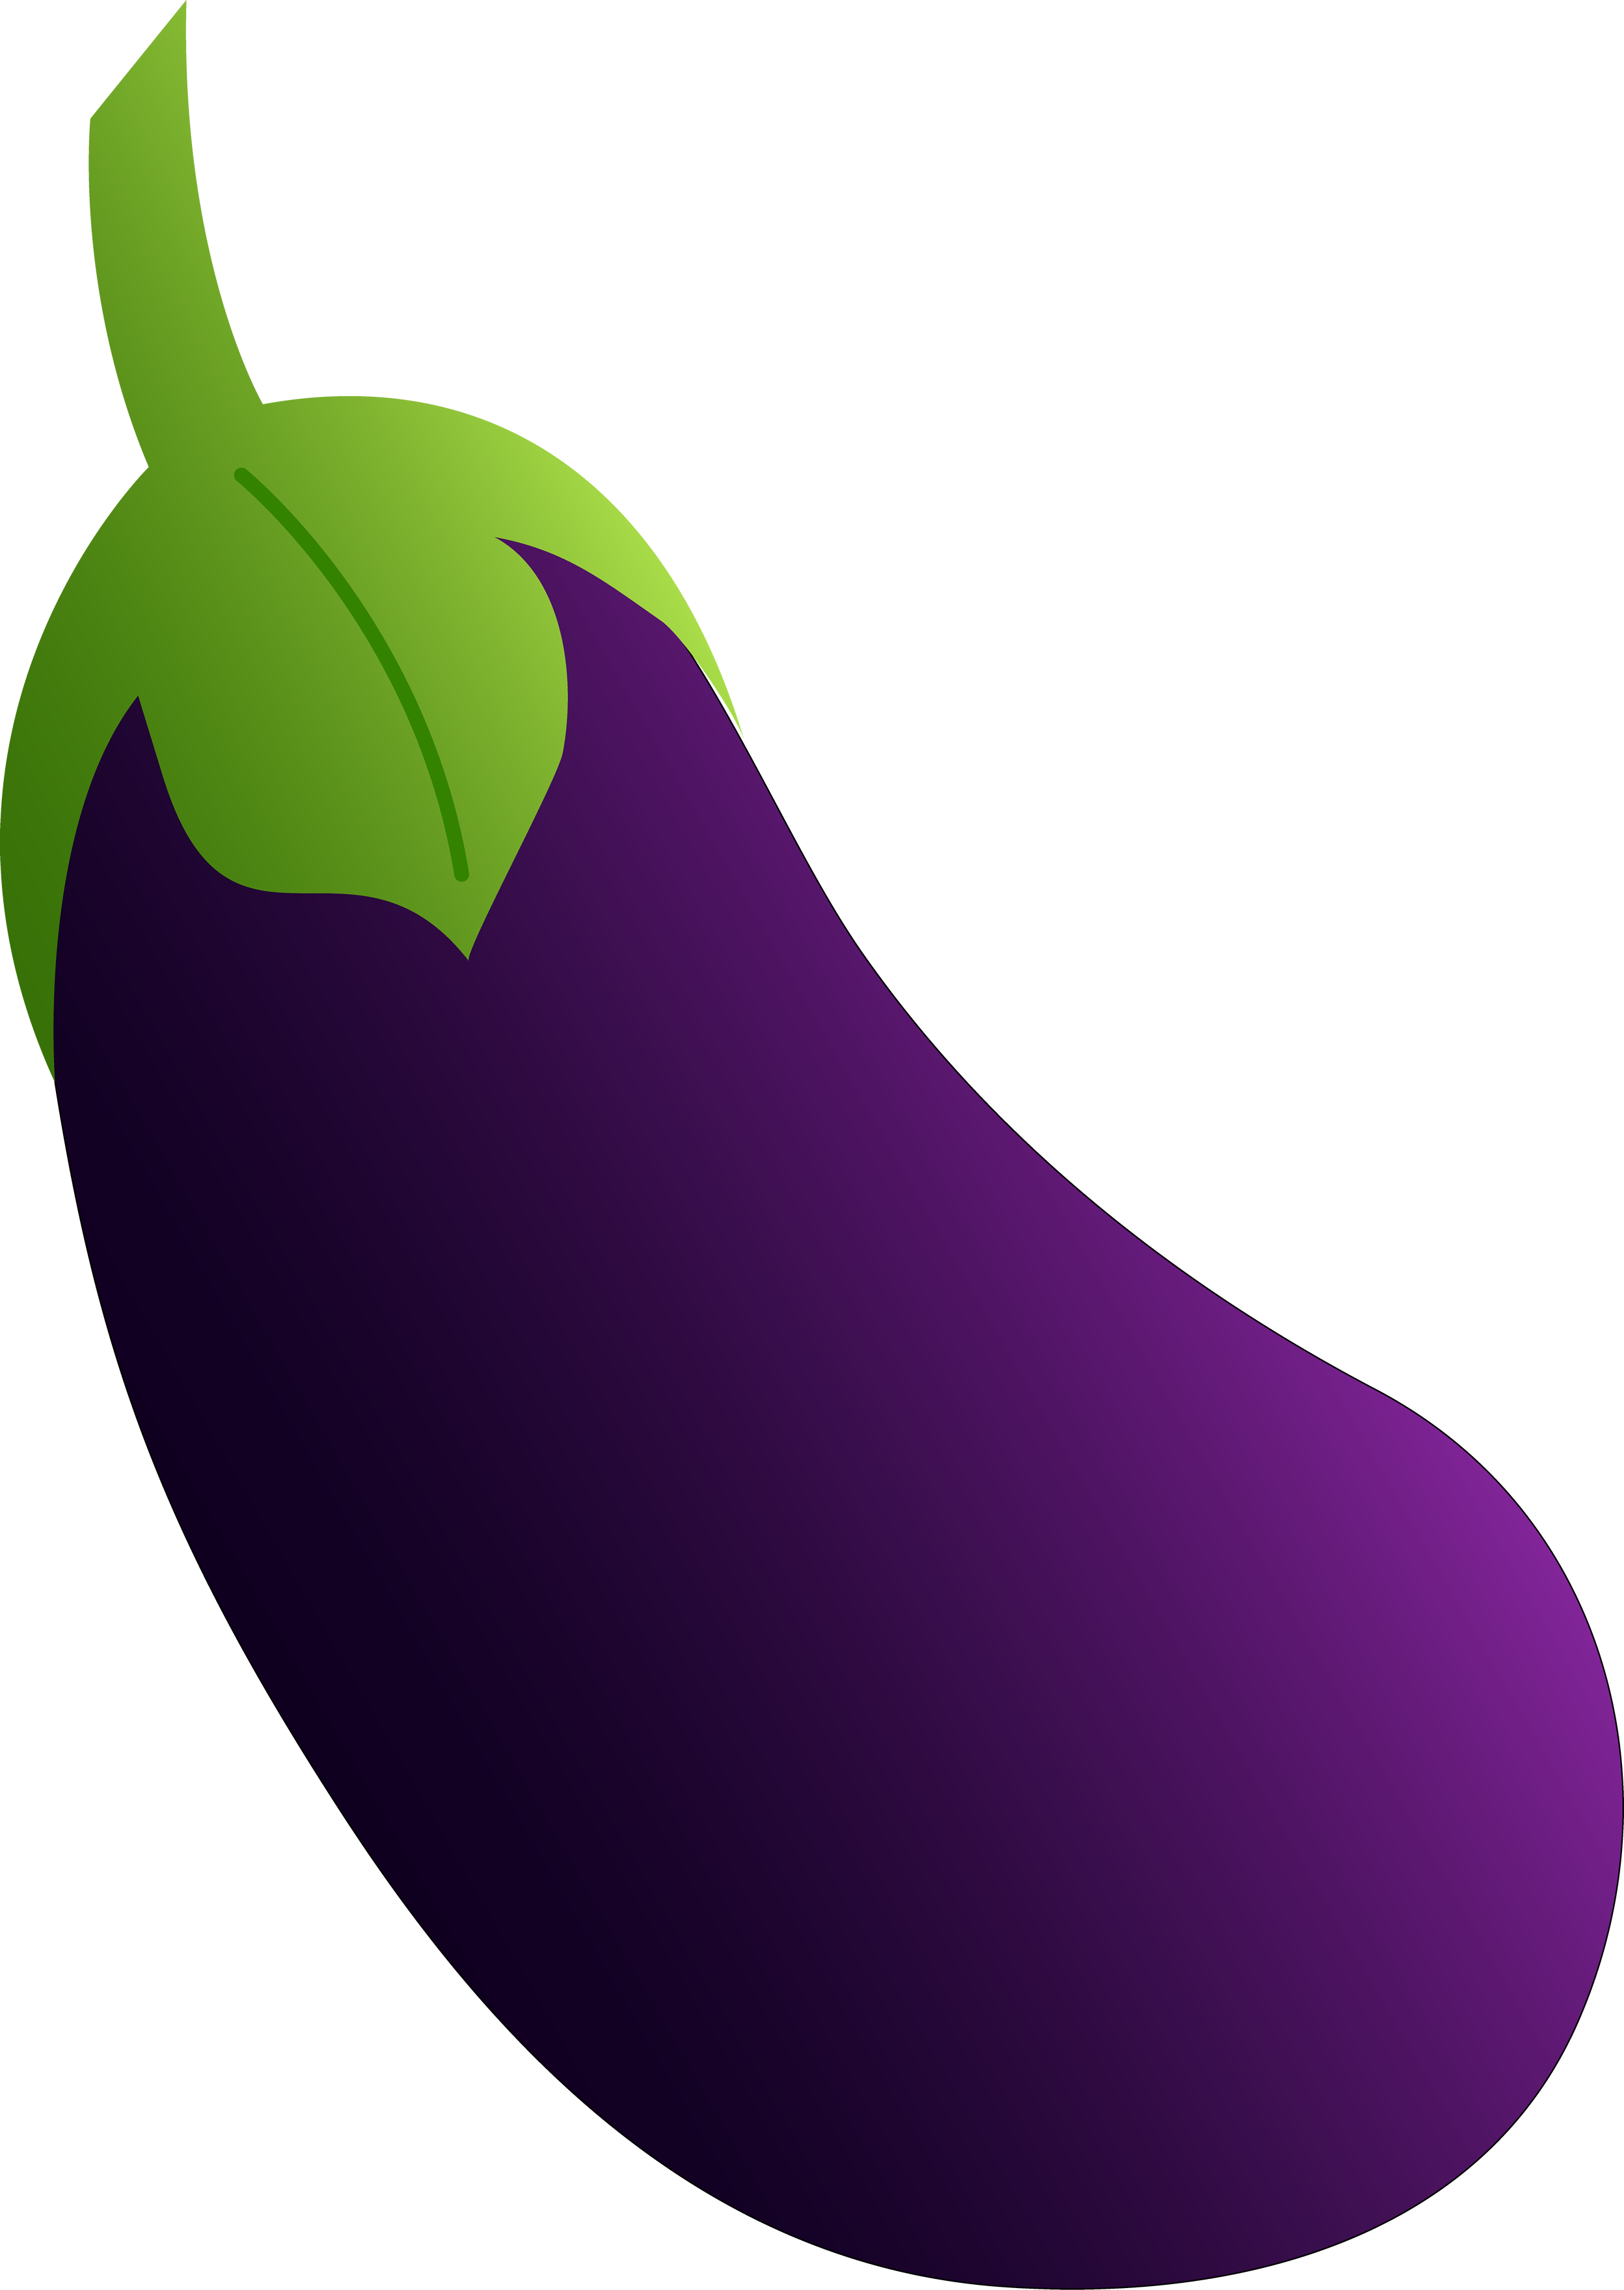 Brinjal clipart 5 » Clipart Station.